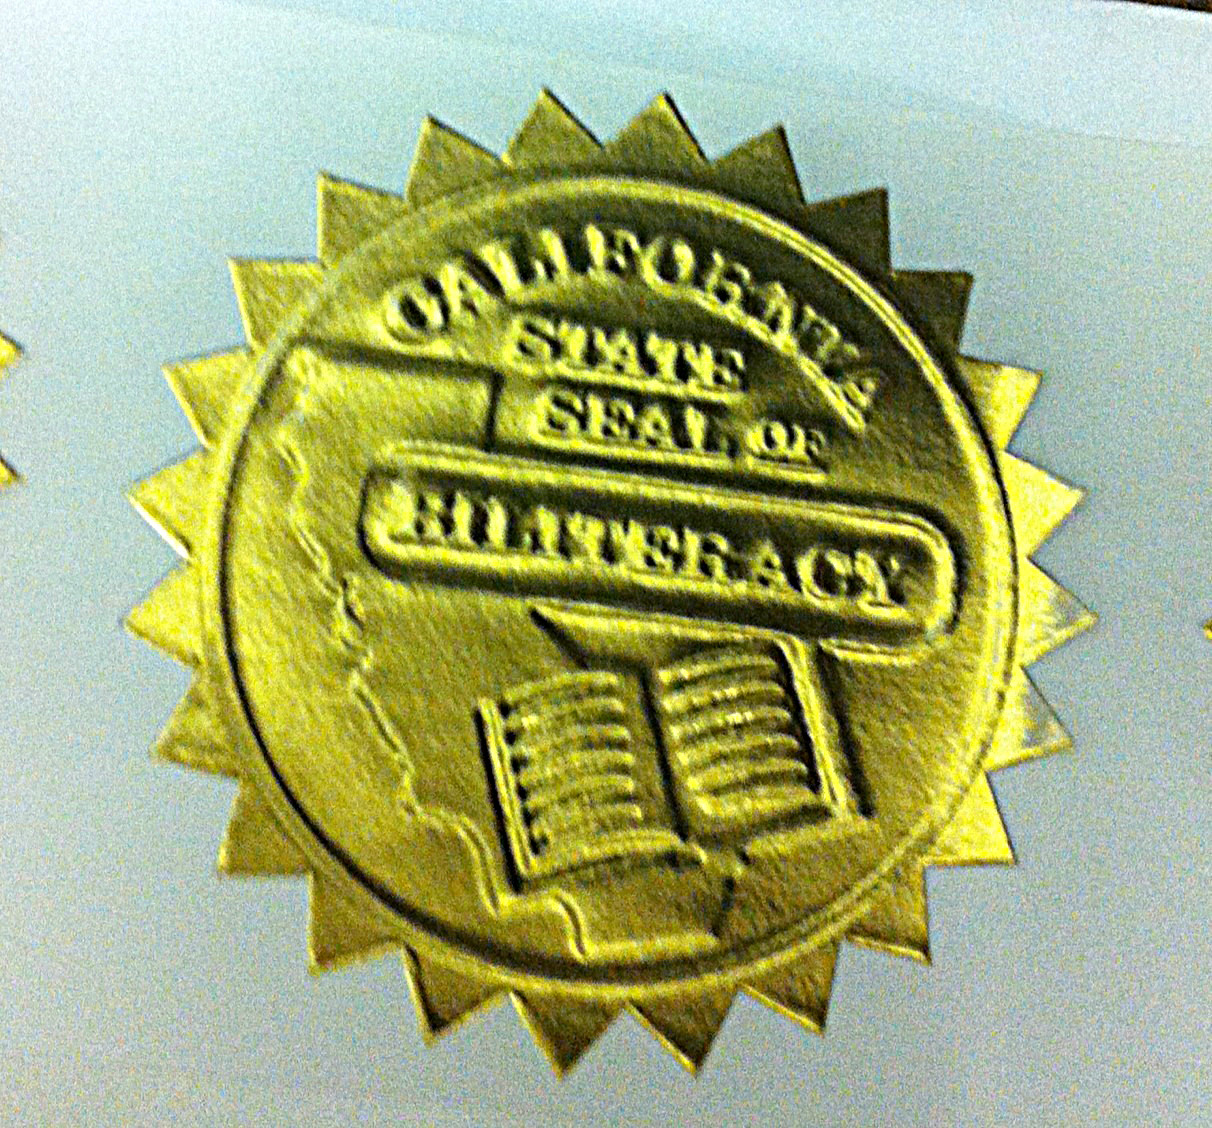 California State Seal of Biliteracy